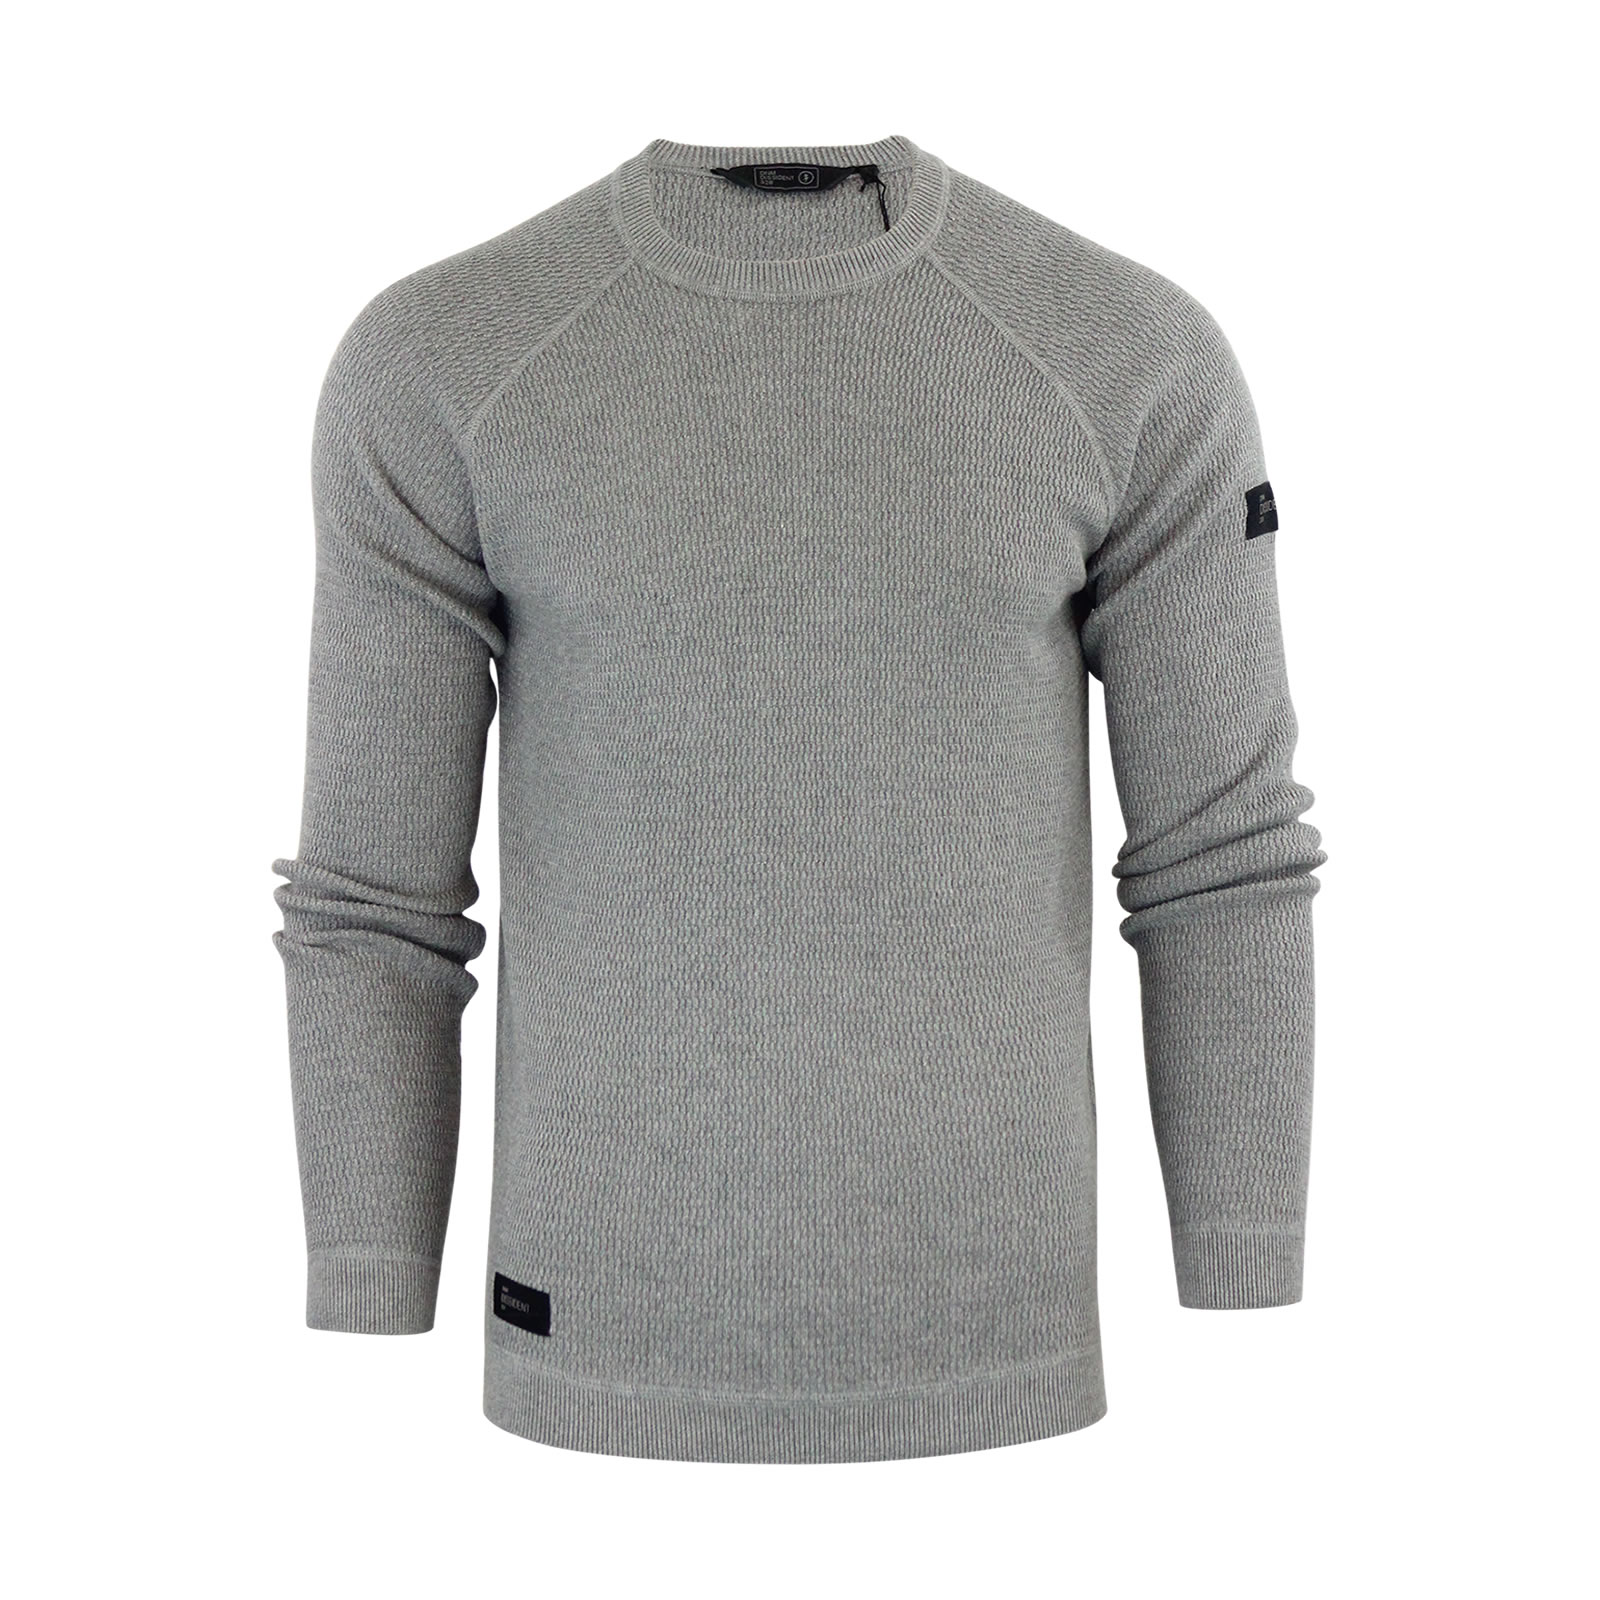 Mens Jumper Dissident Ricardo Cotton Crew Neck Ribbed Sweater | eBay